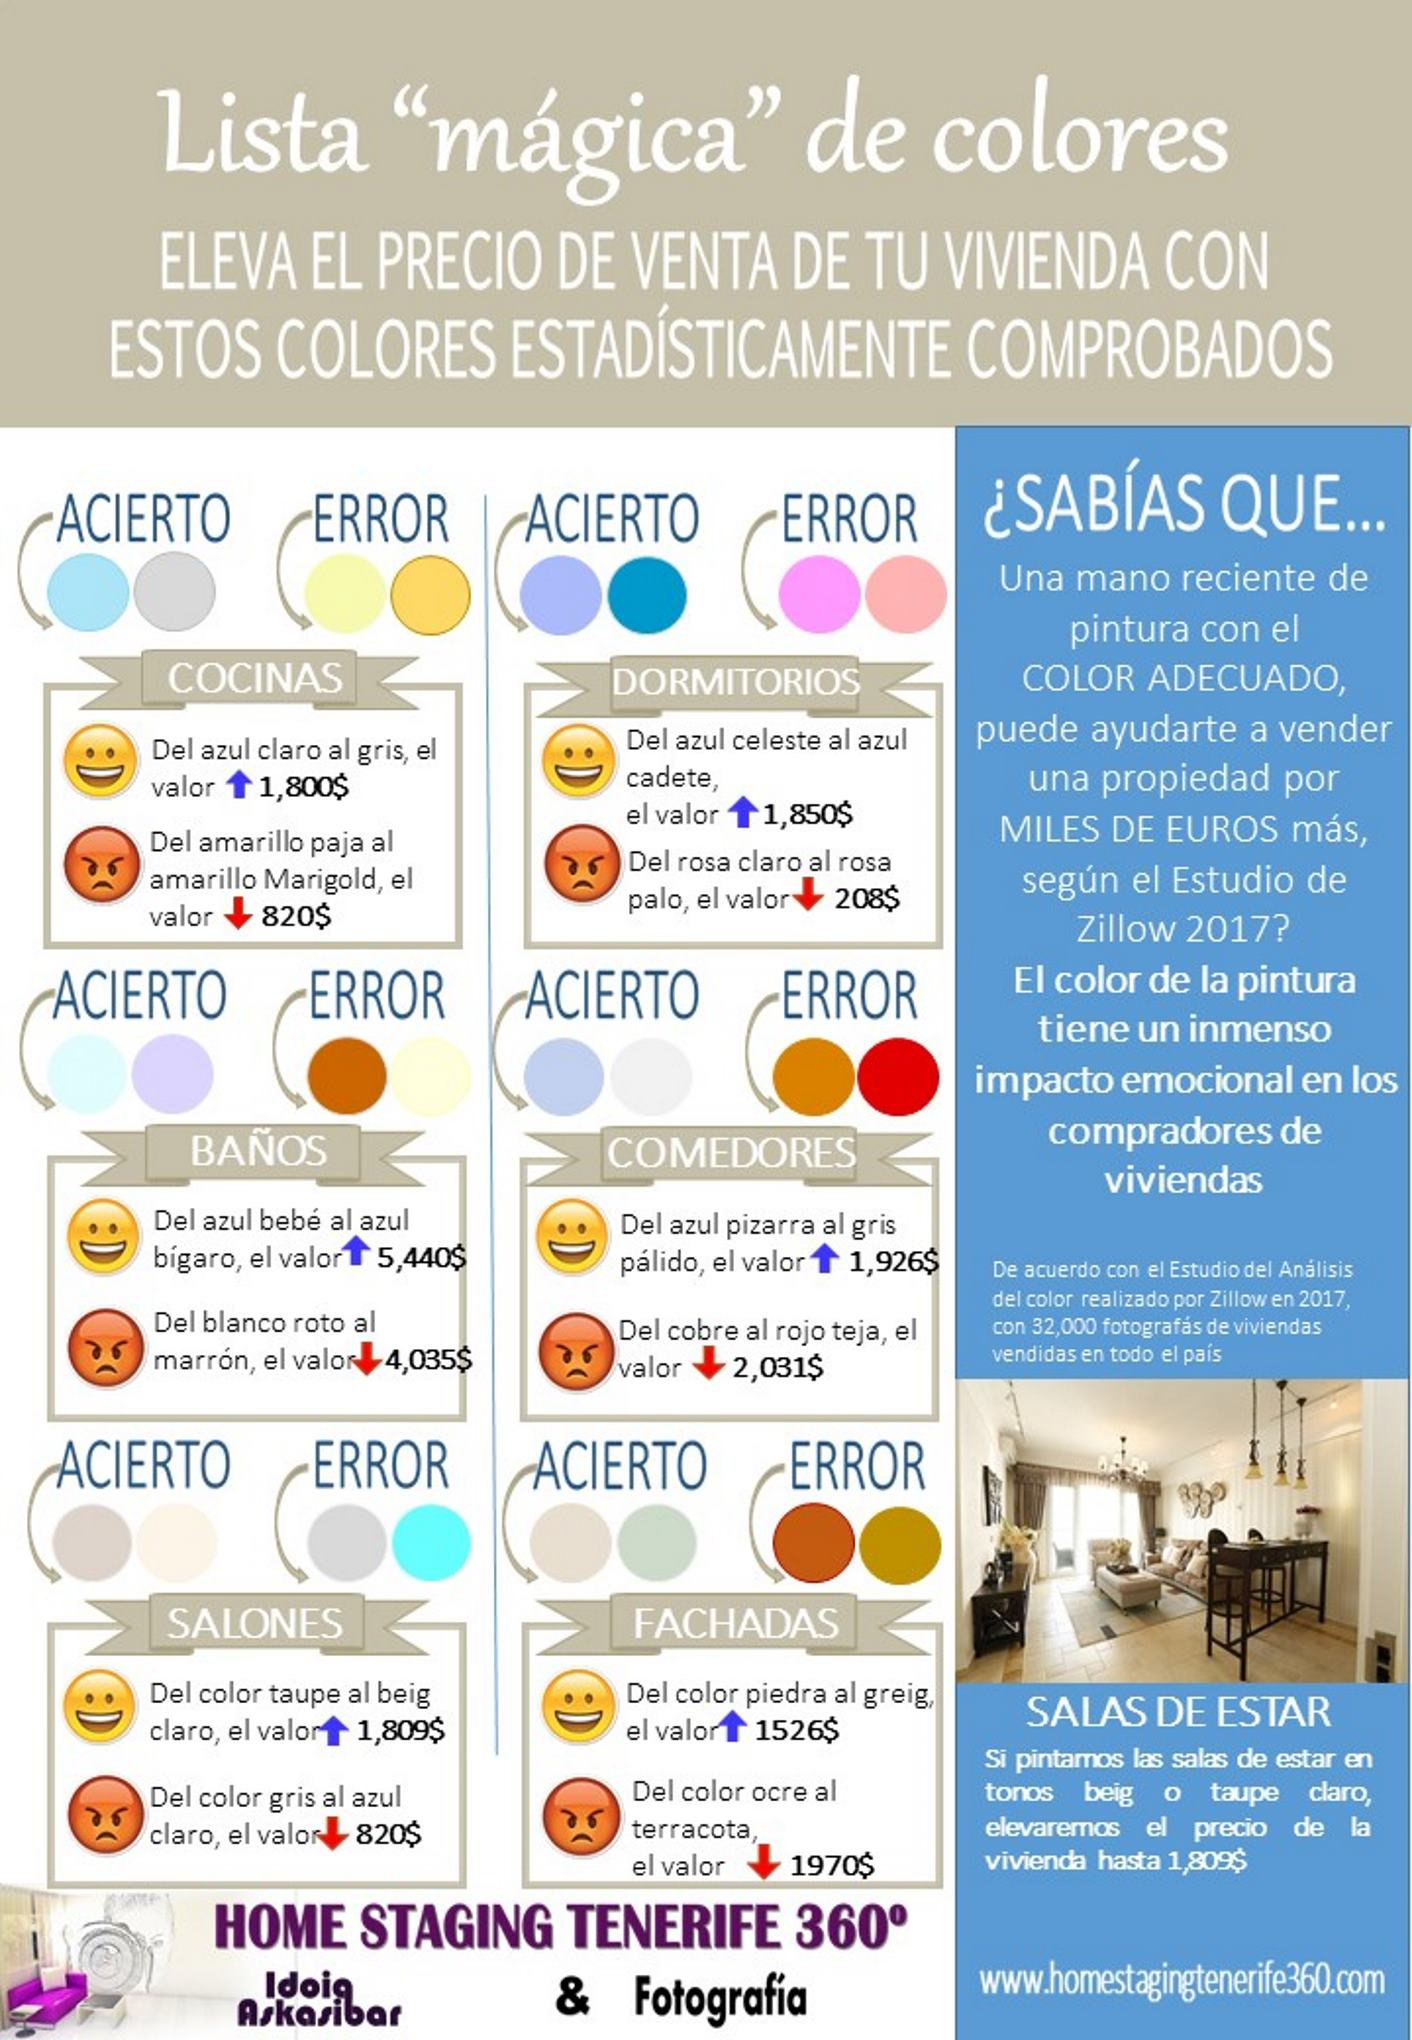 Lista de colores se gun Estucio de Zillow 2017